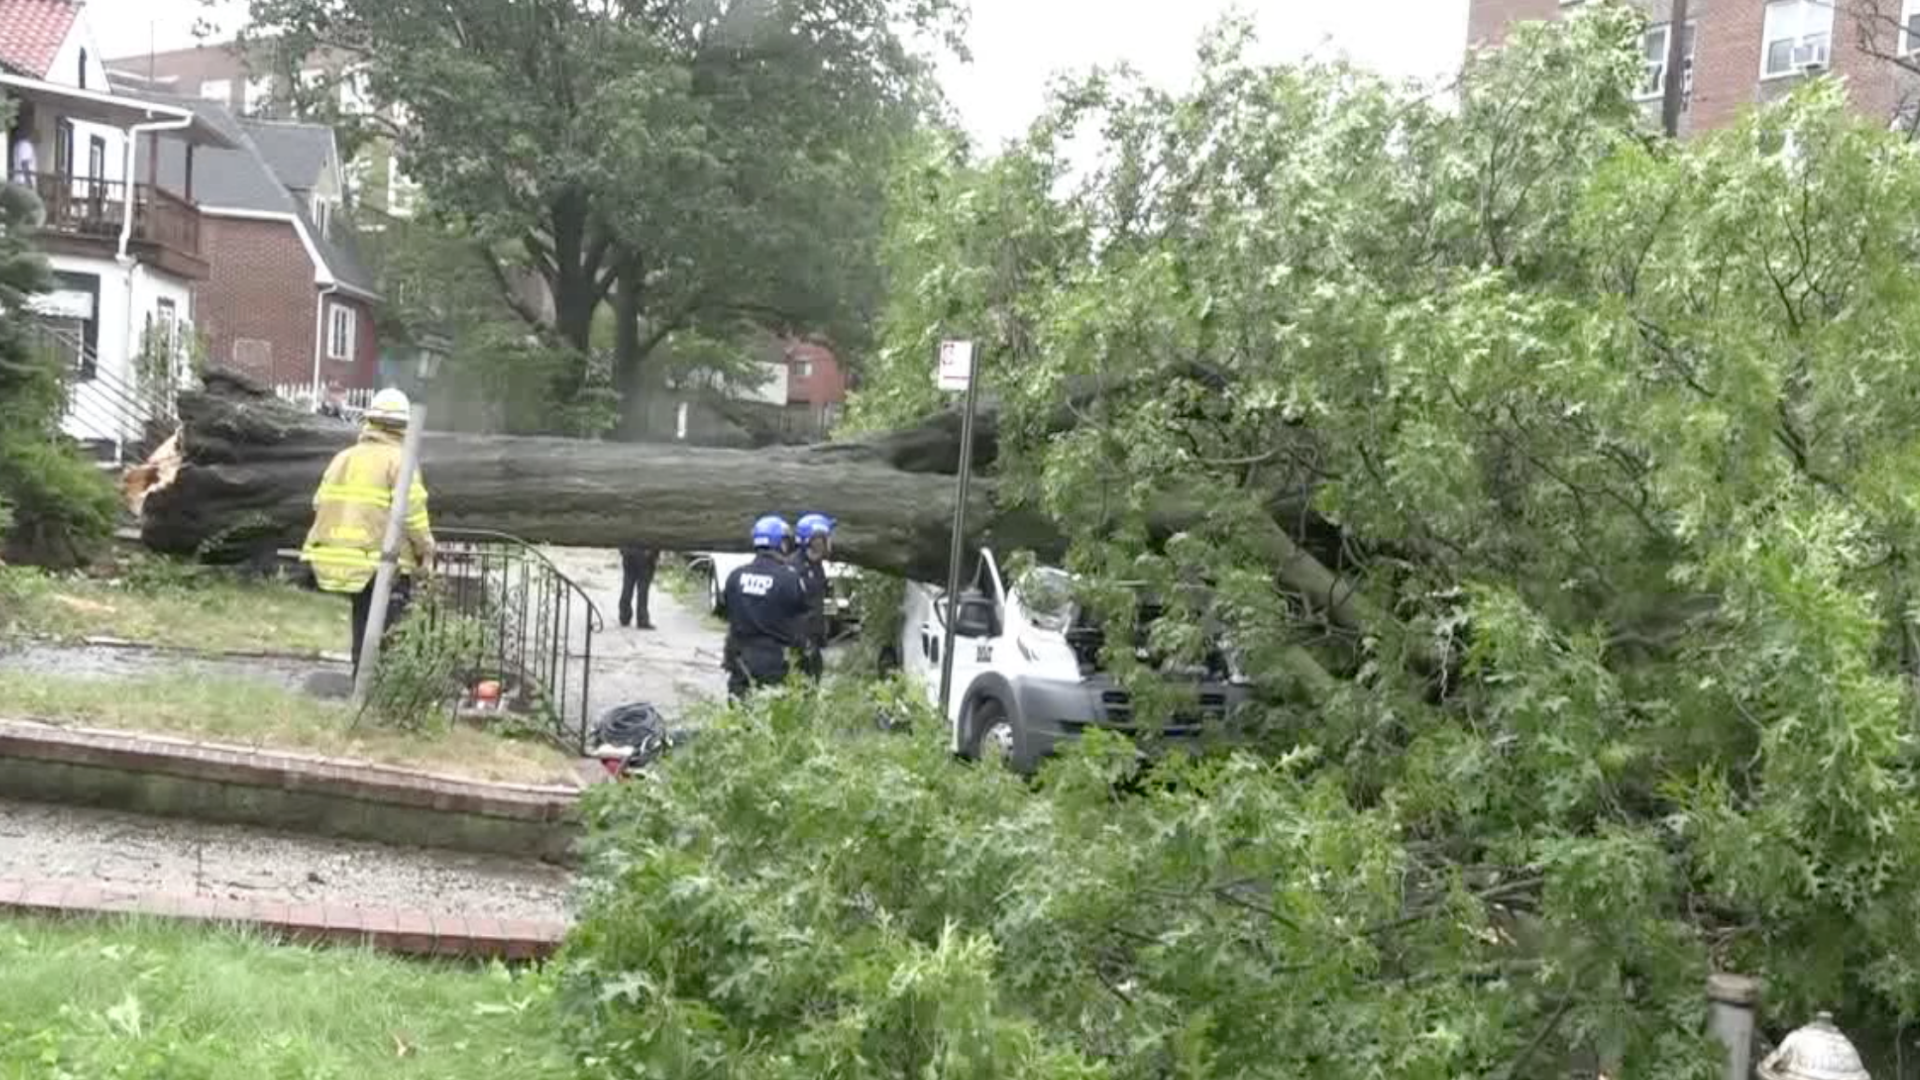 Tree down on vehicle in Queens